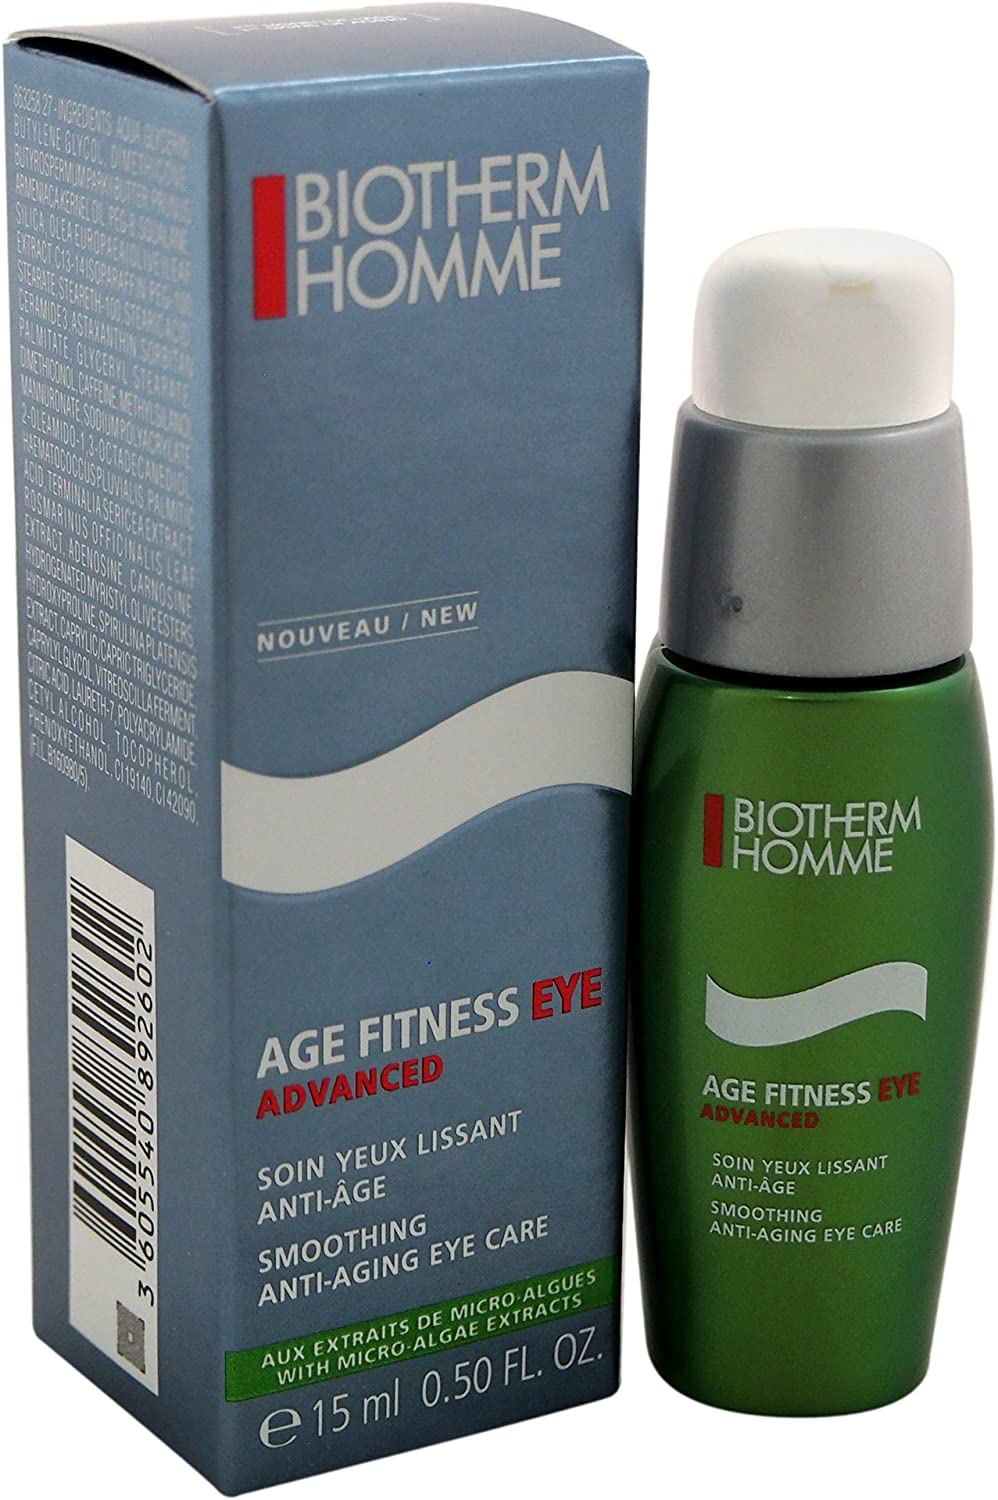 Biotherm Homme Age Fitness Advanced Smoothing Anti-Aging Eye Care, 0.5 Ounce